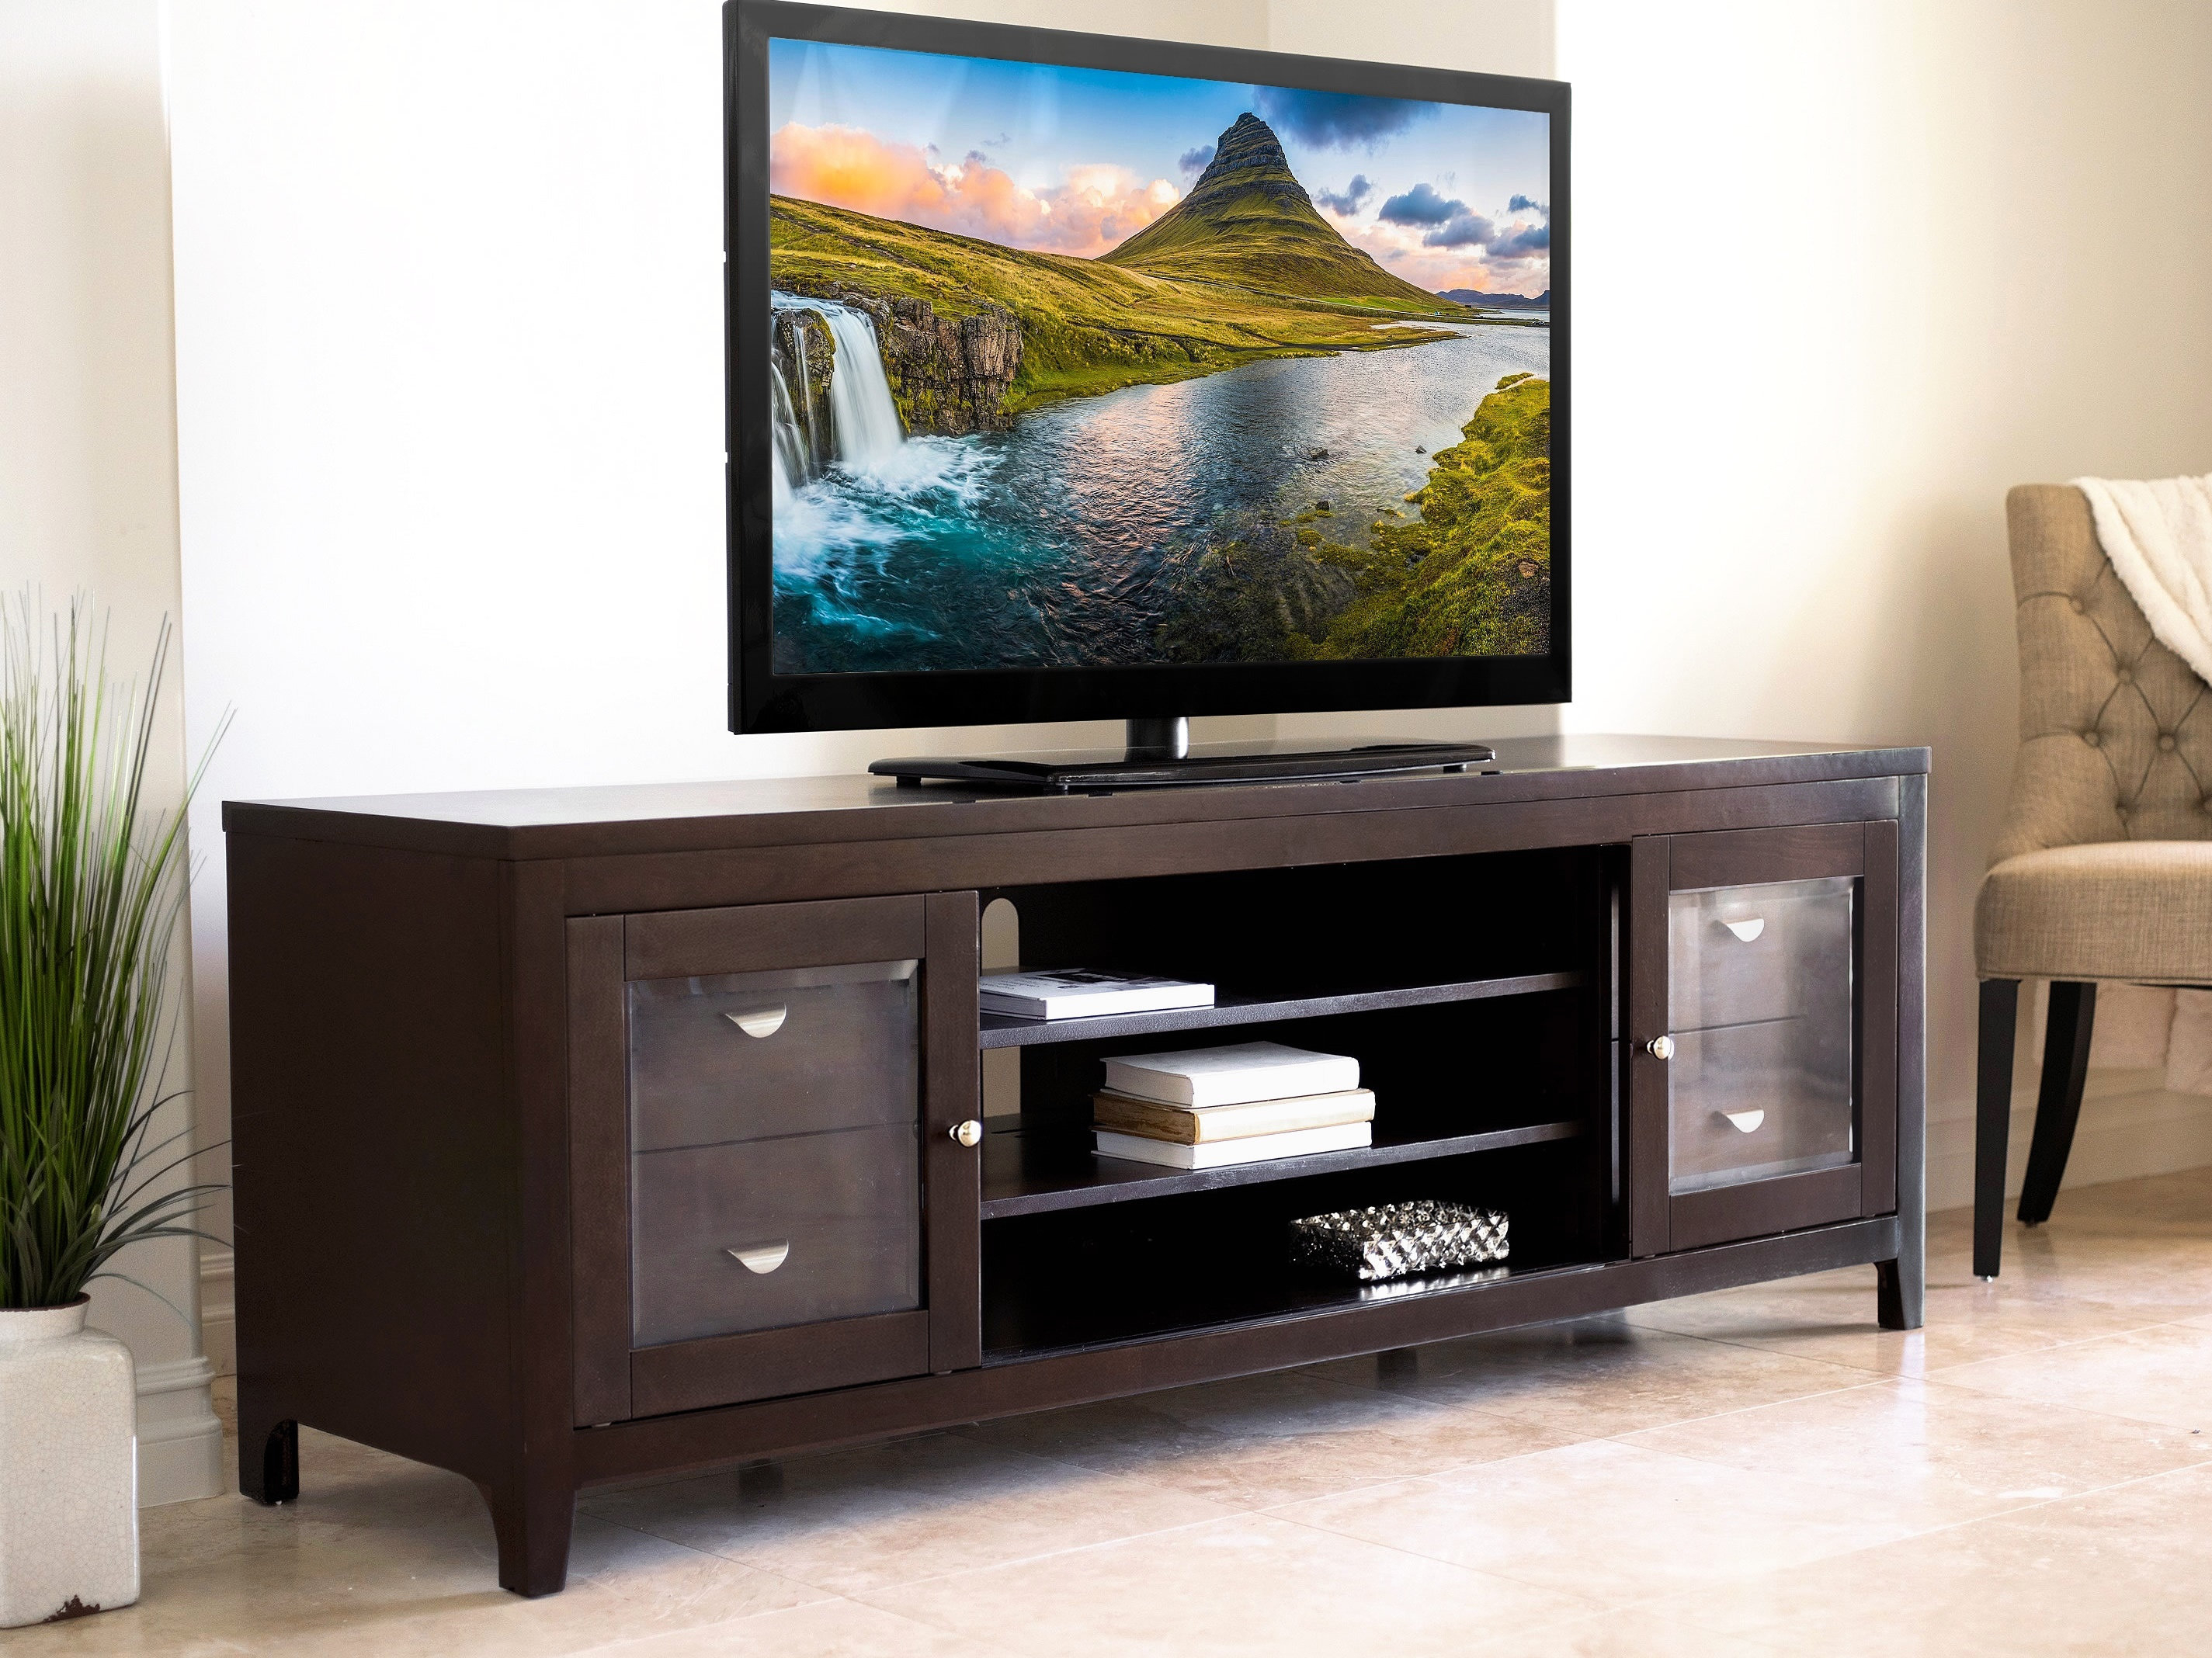 """Red Barrel Studio Spilker Tv Stand For Tvs Up To 70"""" & Reviews 